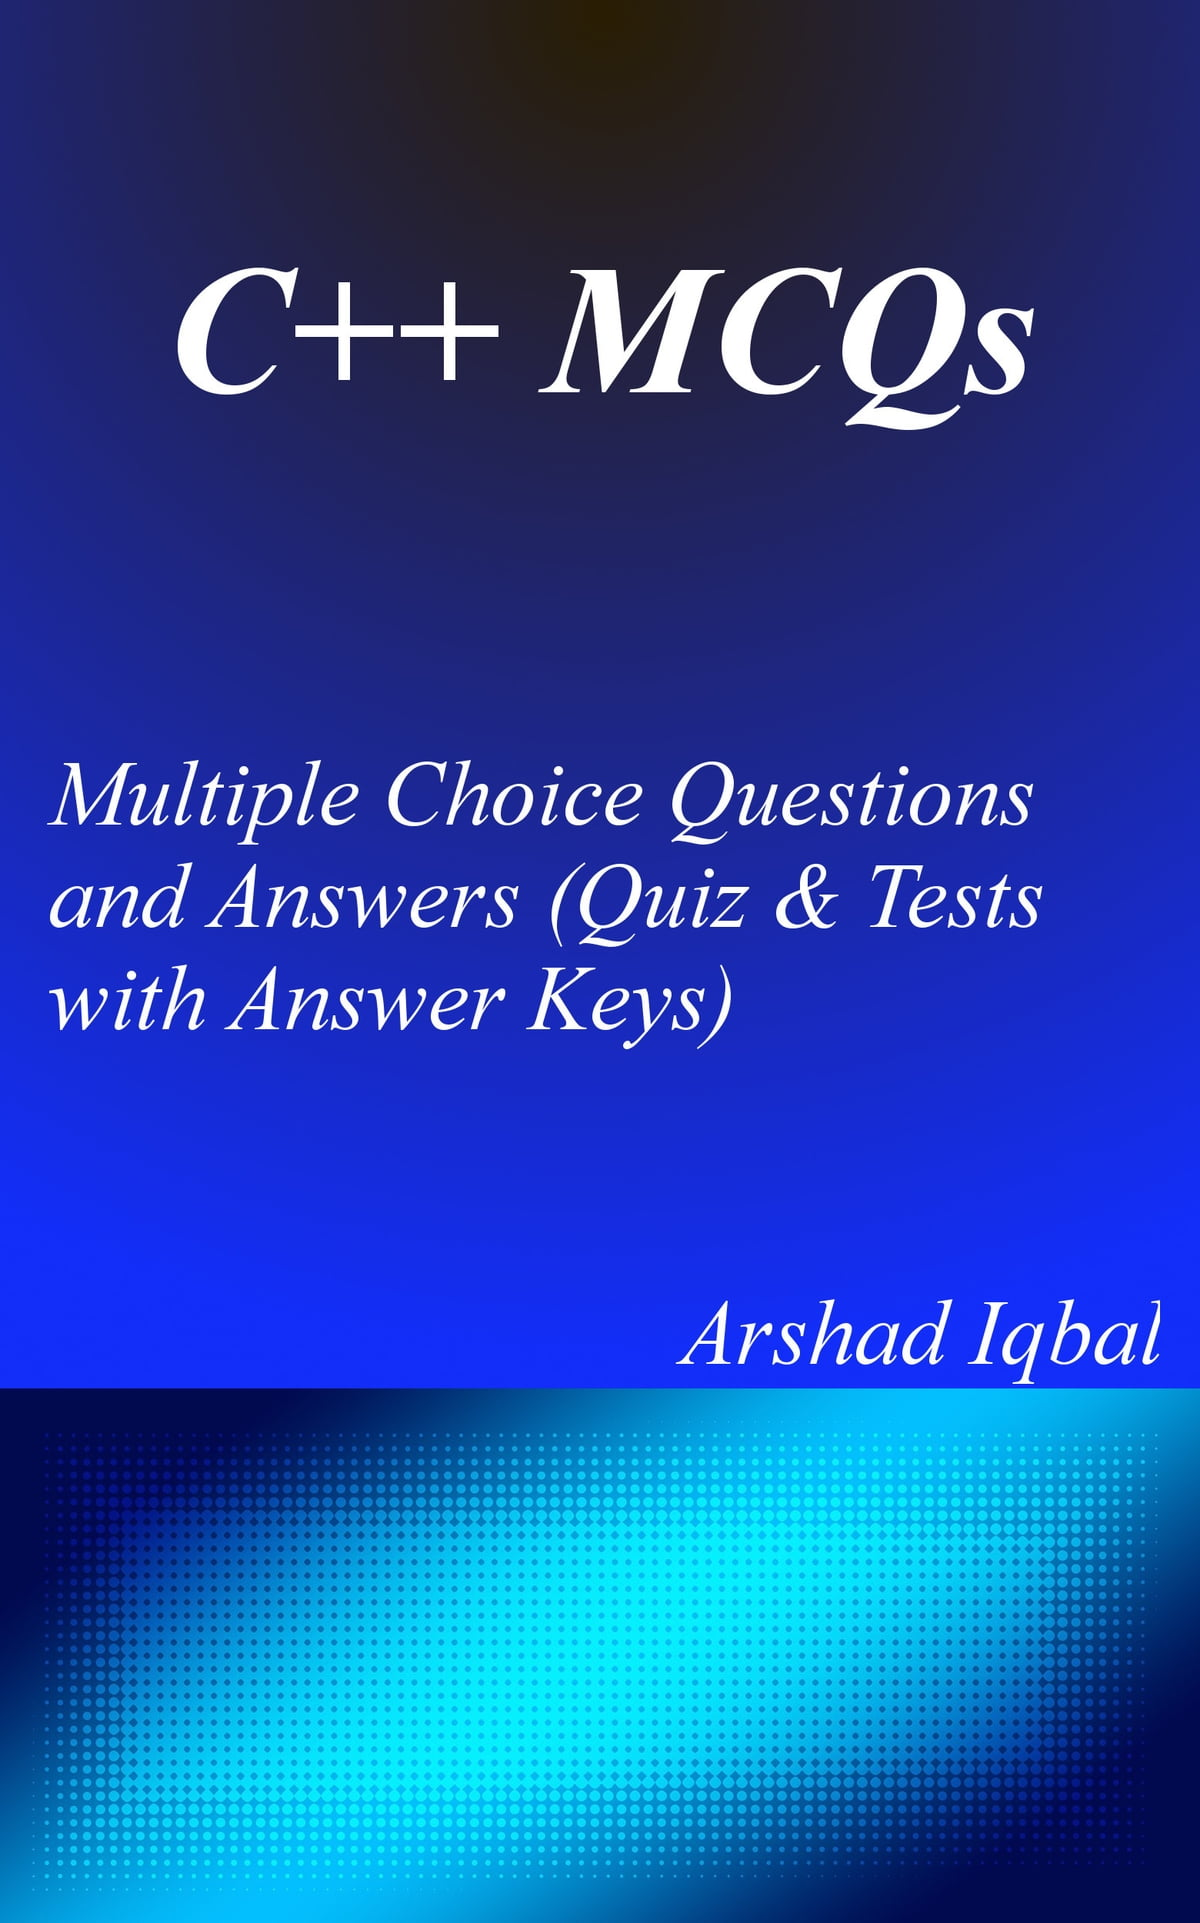 C++ MCQs: Multiple Choice Questions and Answers (Quiz & Tests with Answer  Keys) ebook by Arshad Iqbal - Rakuten Kobo